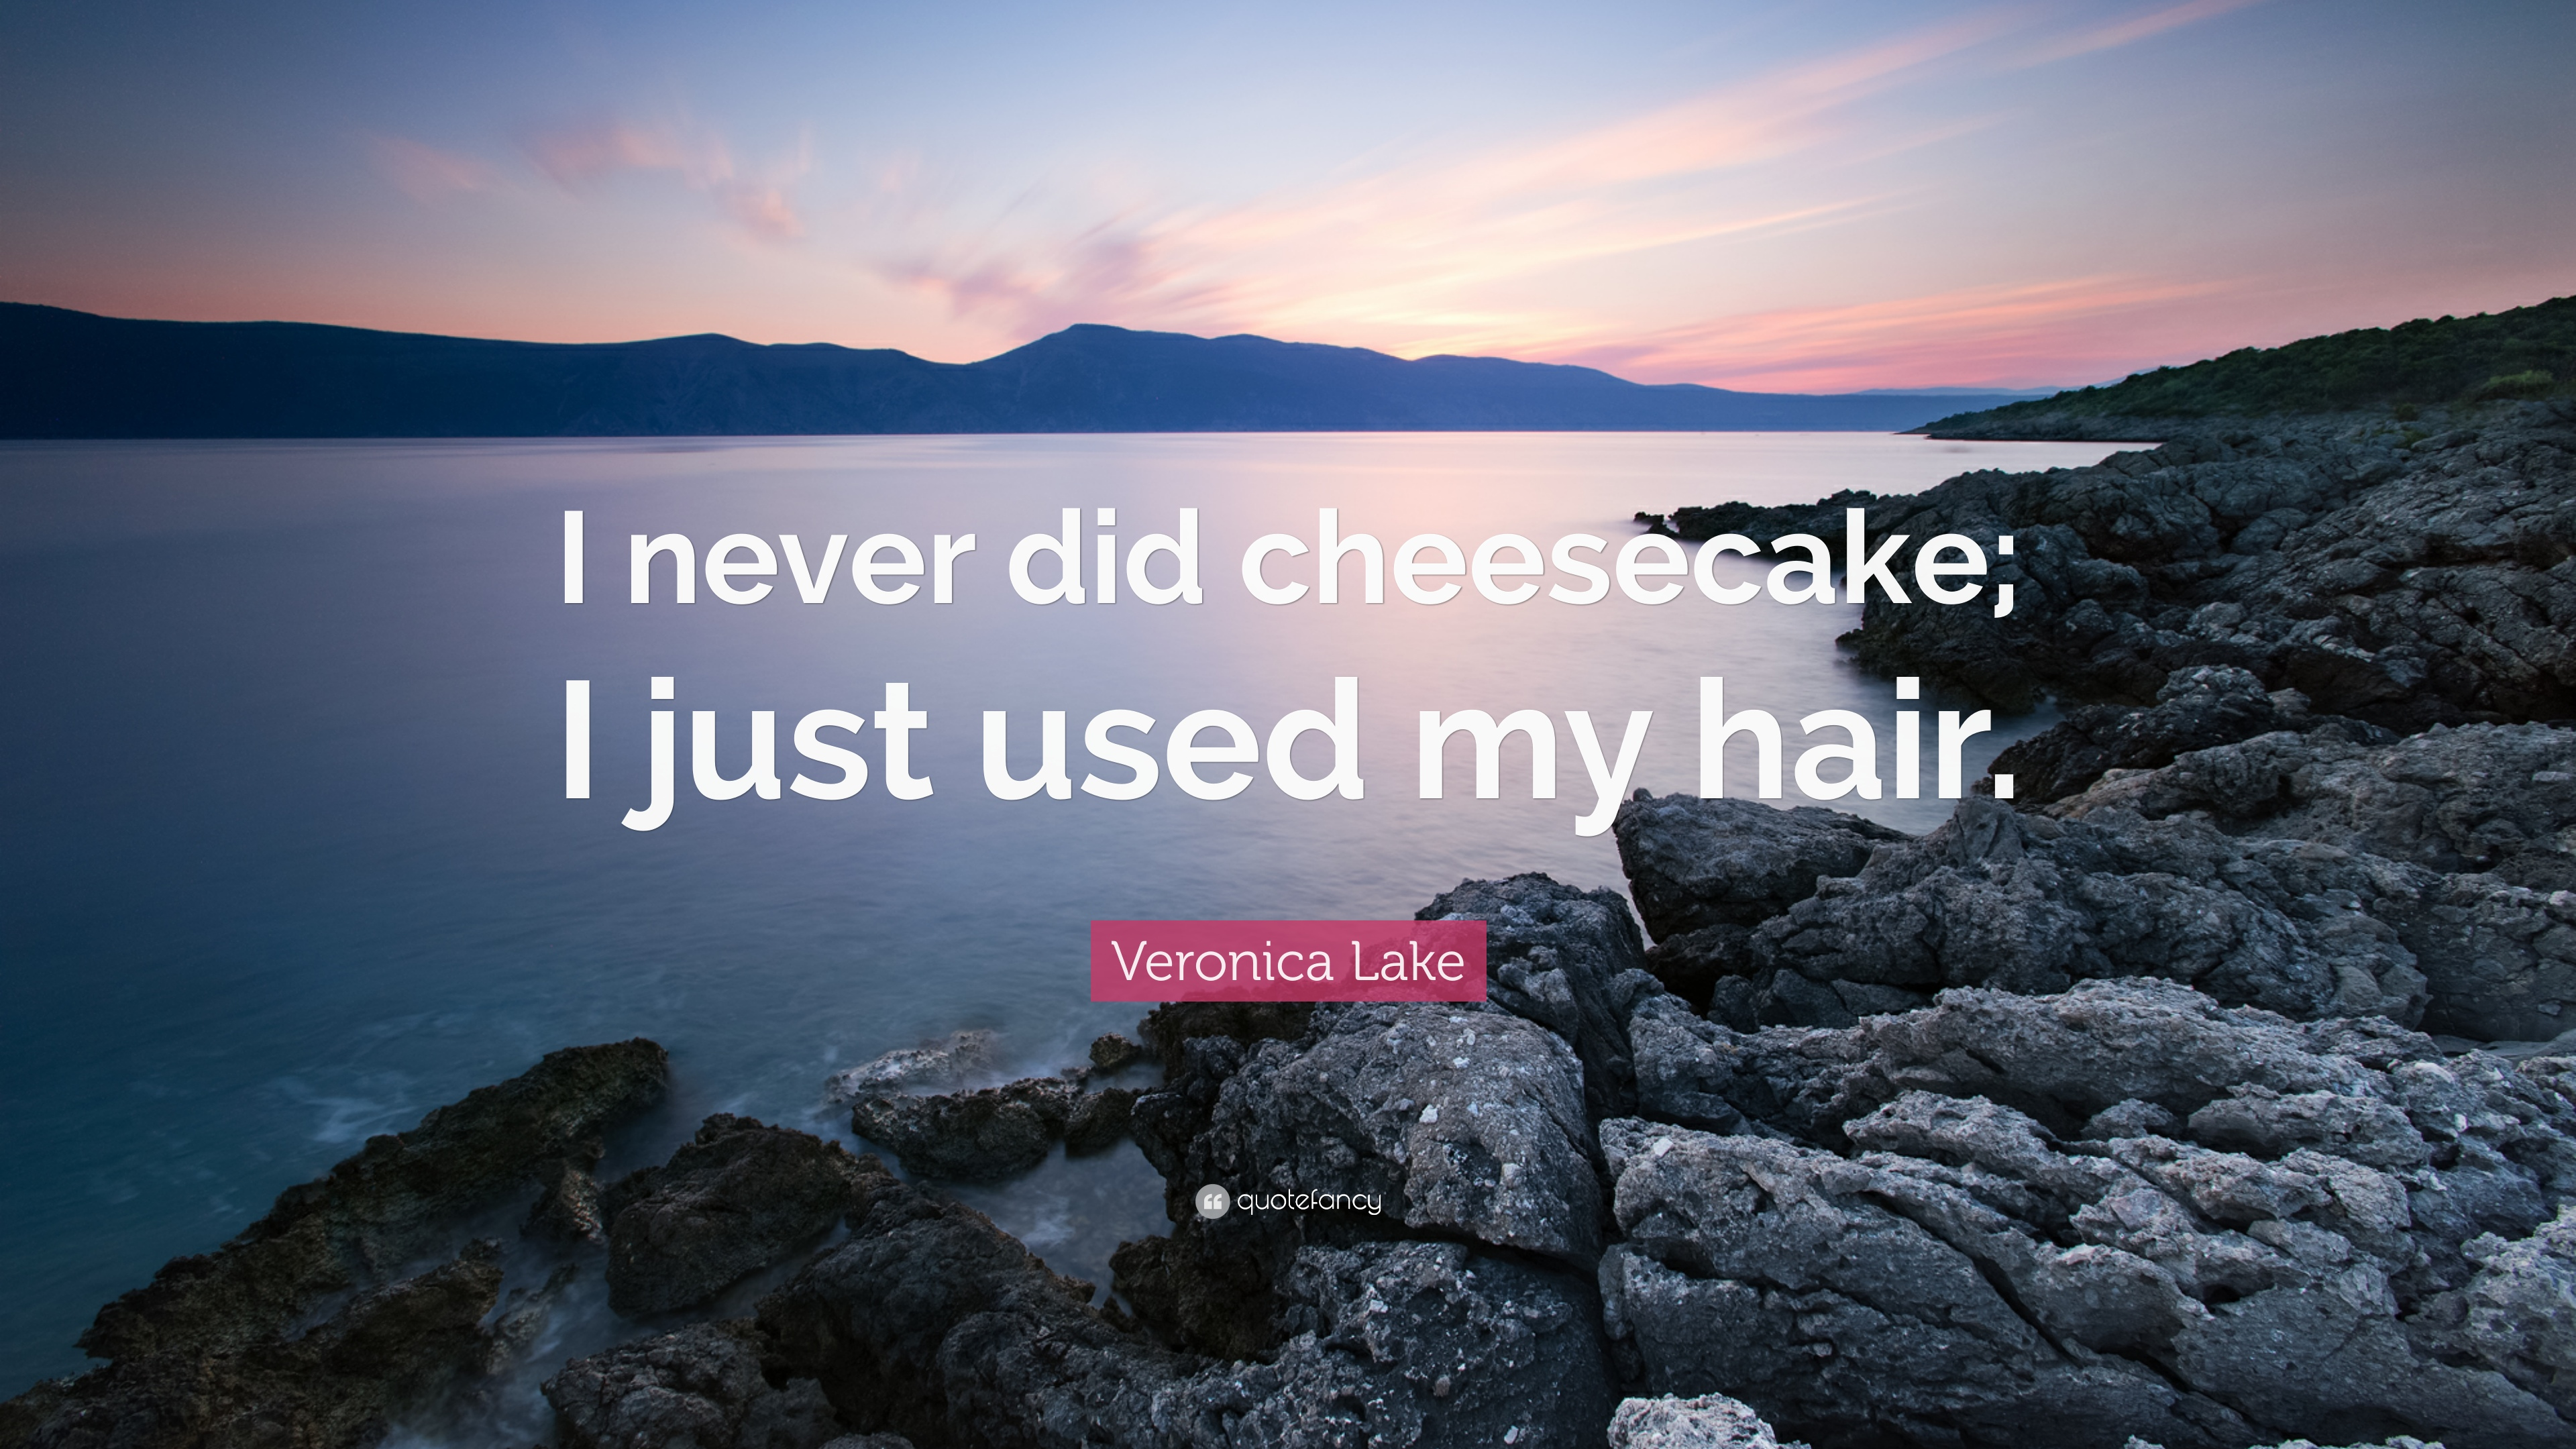 Lake Quotes | Veronica Lake Quotes 4 Wallpapers Quotefancy